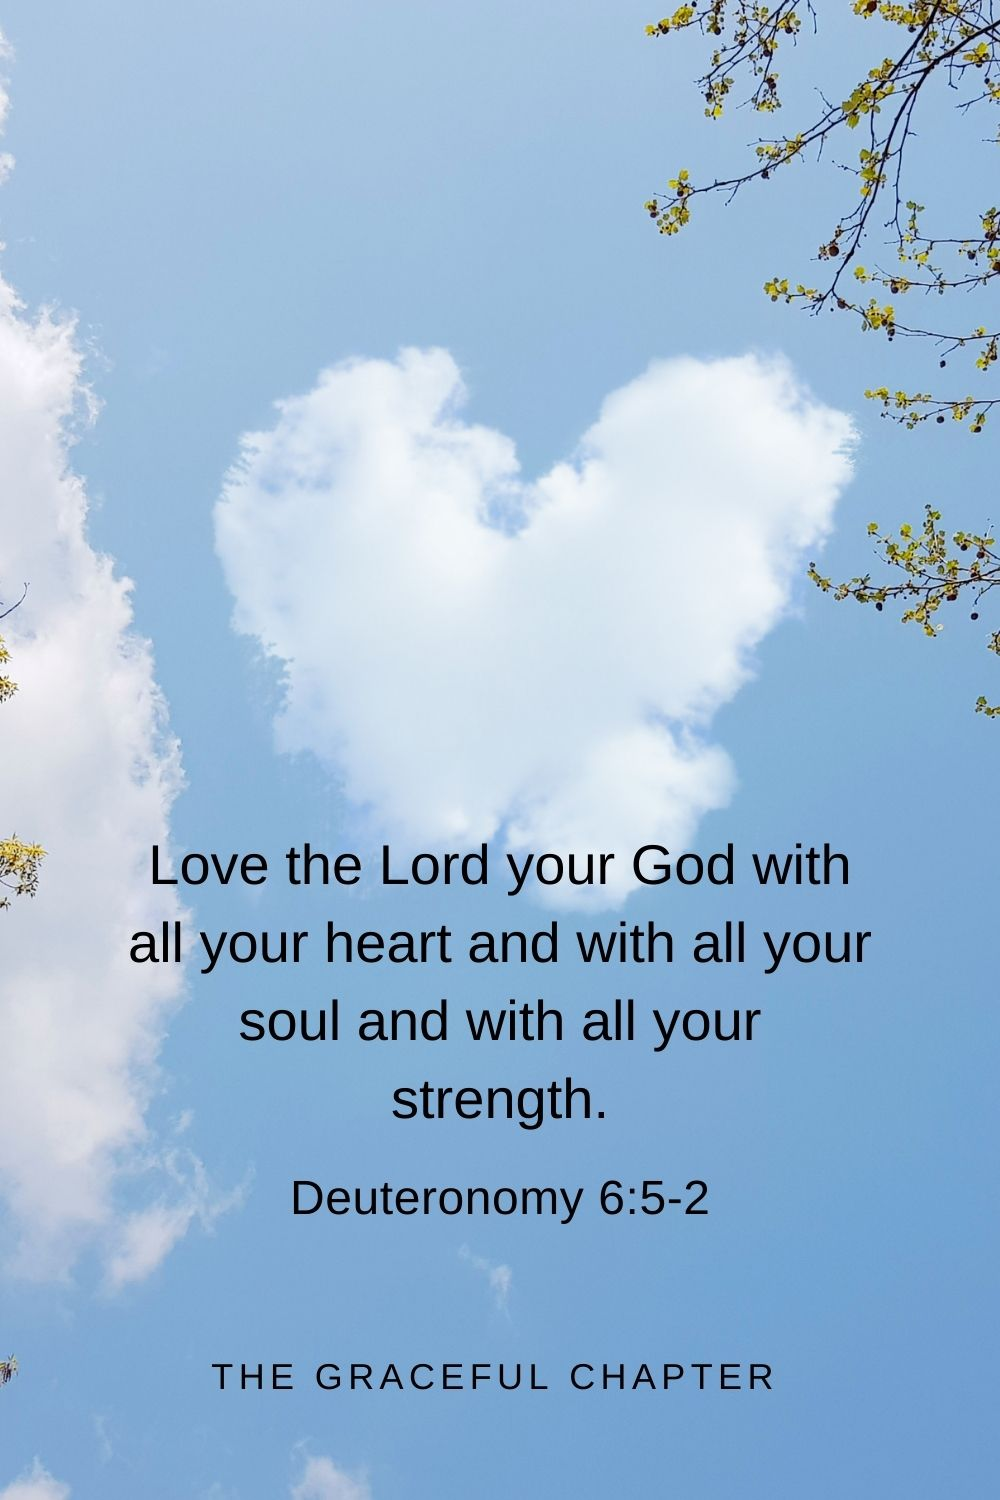 Love the Lord your God with all your heart and with all your soul and with all your strength. Deuteronomy 6:5-2